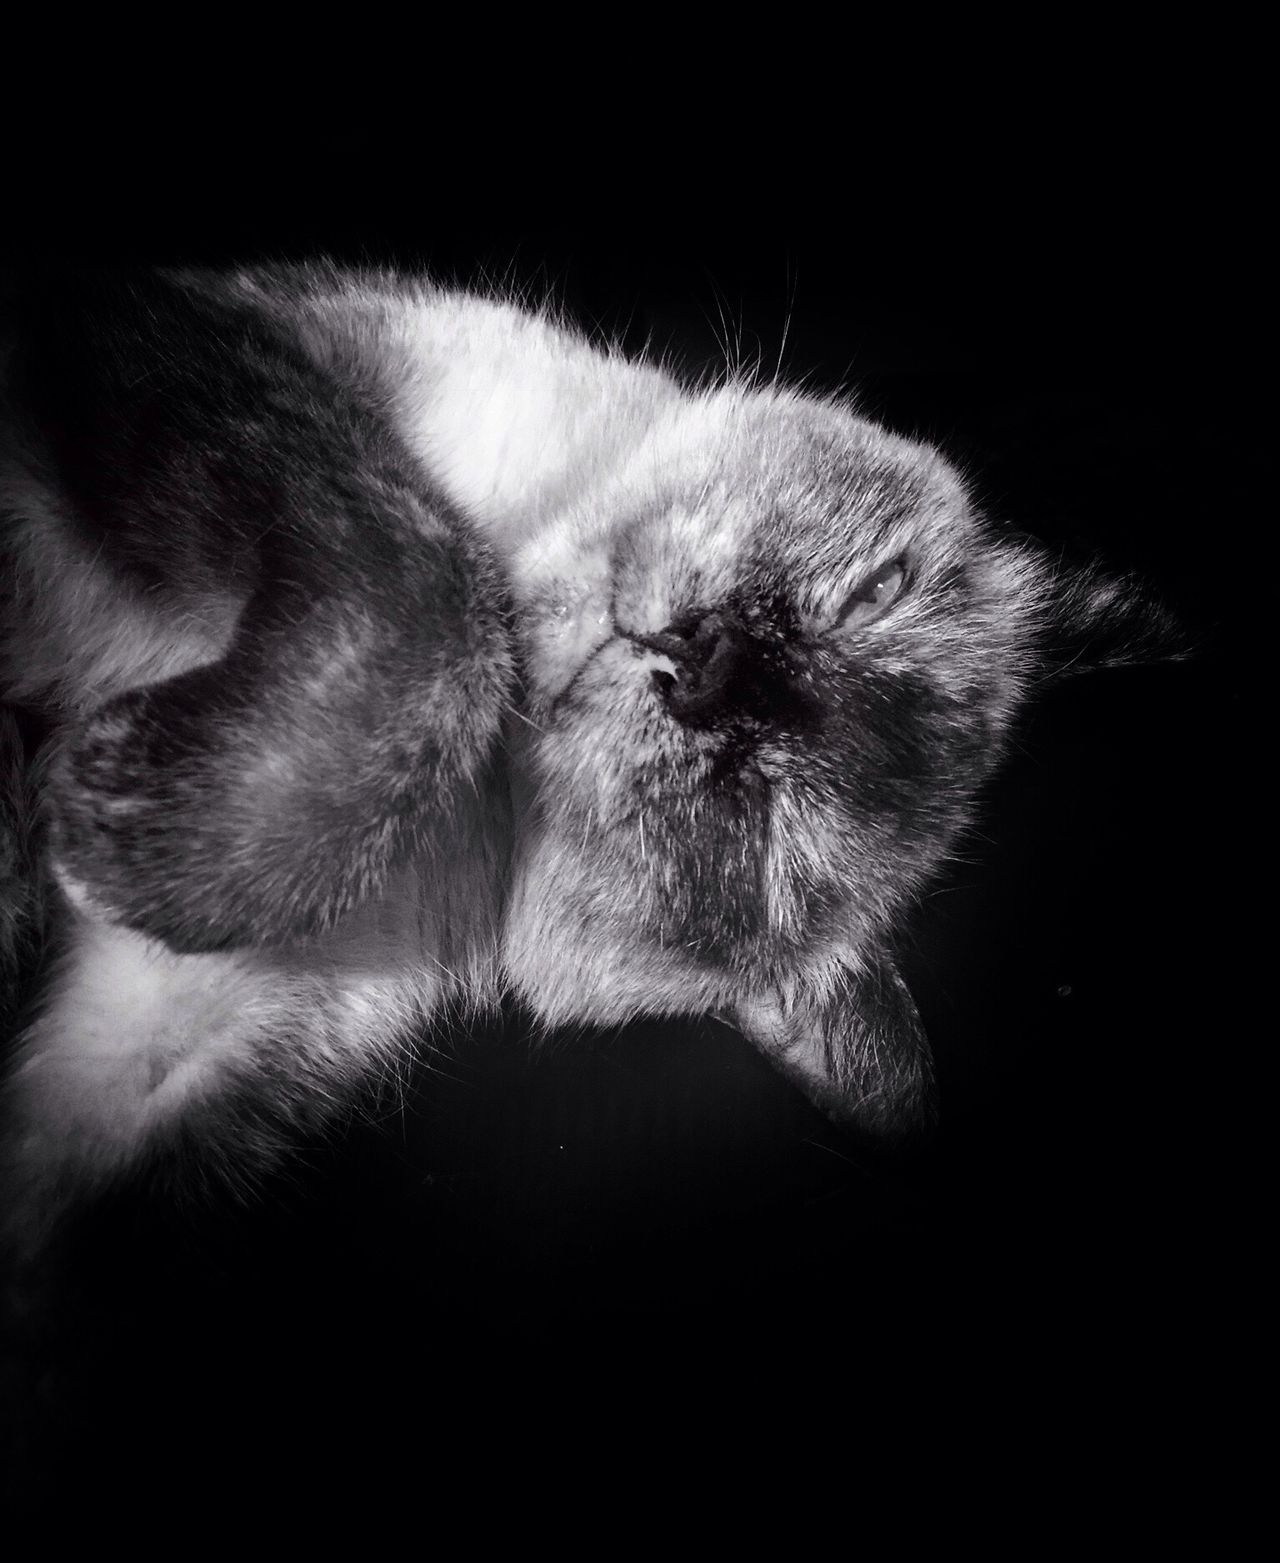 One Animal Animal Themes Domestic Cat Pets Domestic Animals Close-up Mammal Feline Cat Animal Head  Black Background Zoology Studio Shot Whisker No People Lola❤️ Blackandwhite From My Point Of View Check This Out Pet Cute Wink